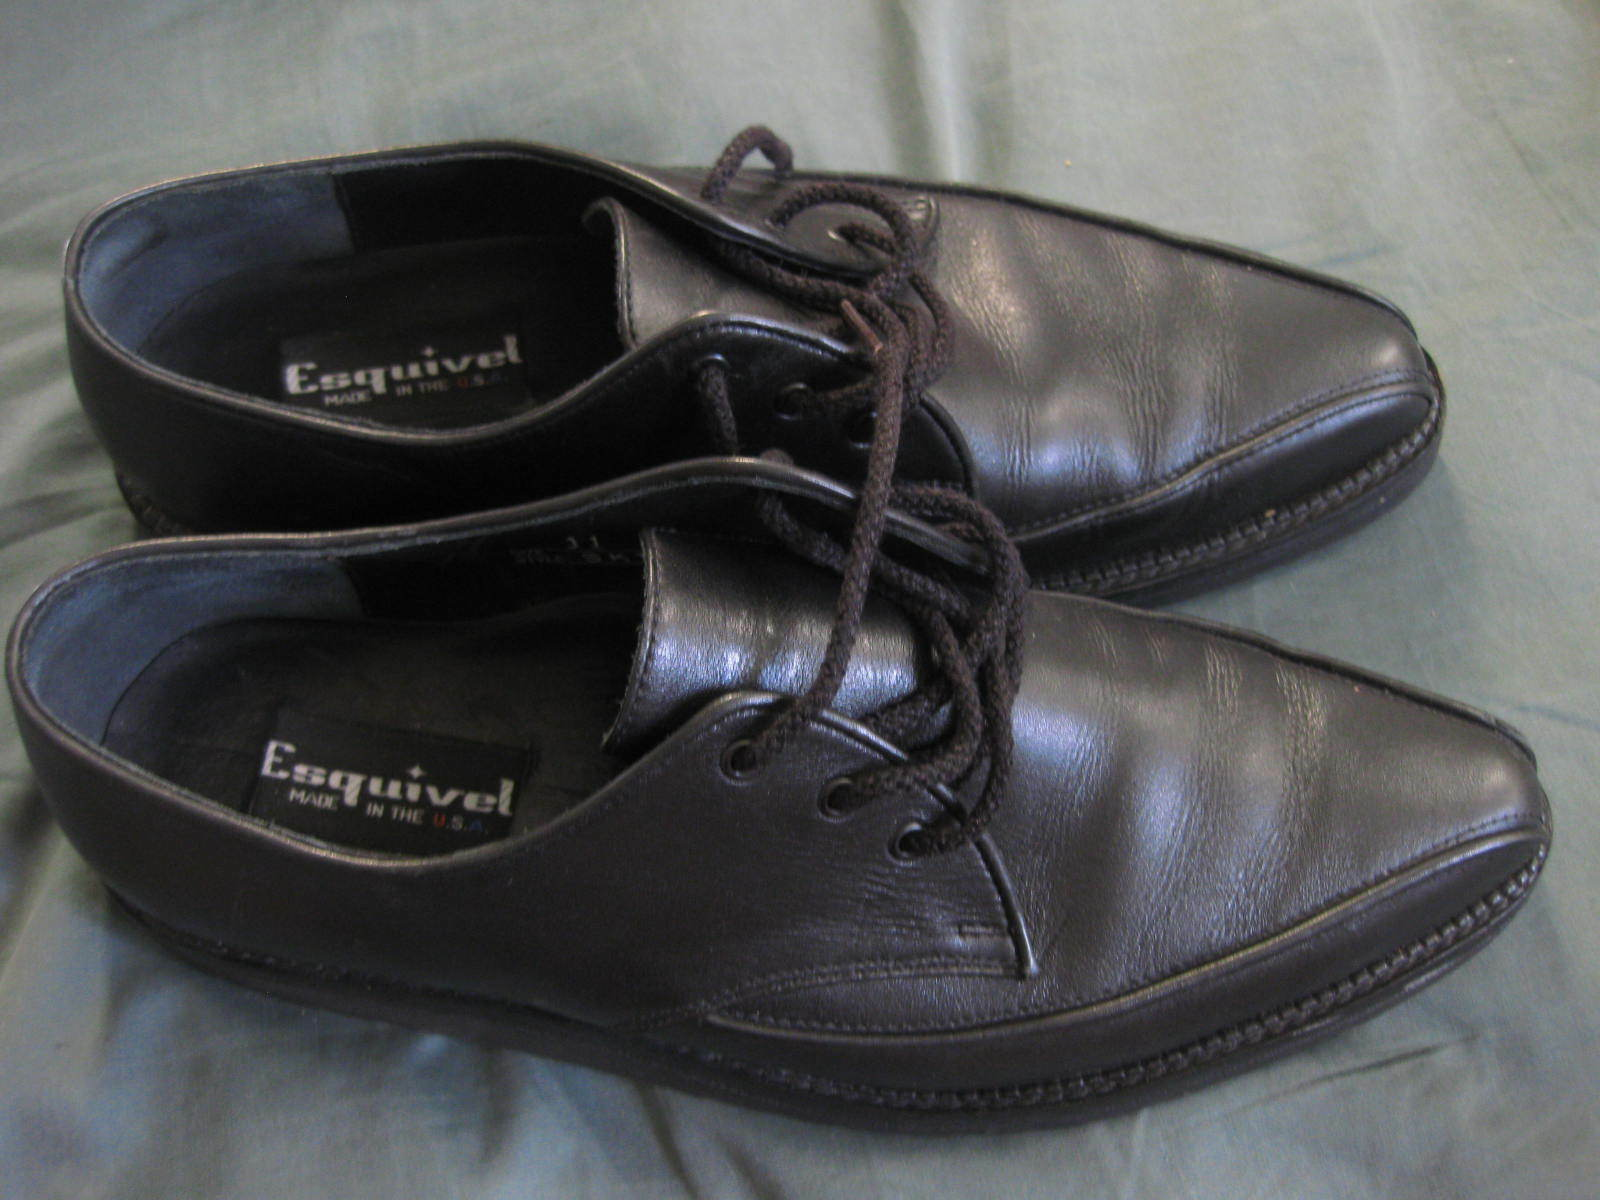 Esquivel Handmade Working Security shoes  Size 11,style SK1